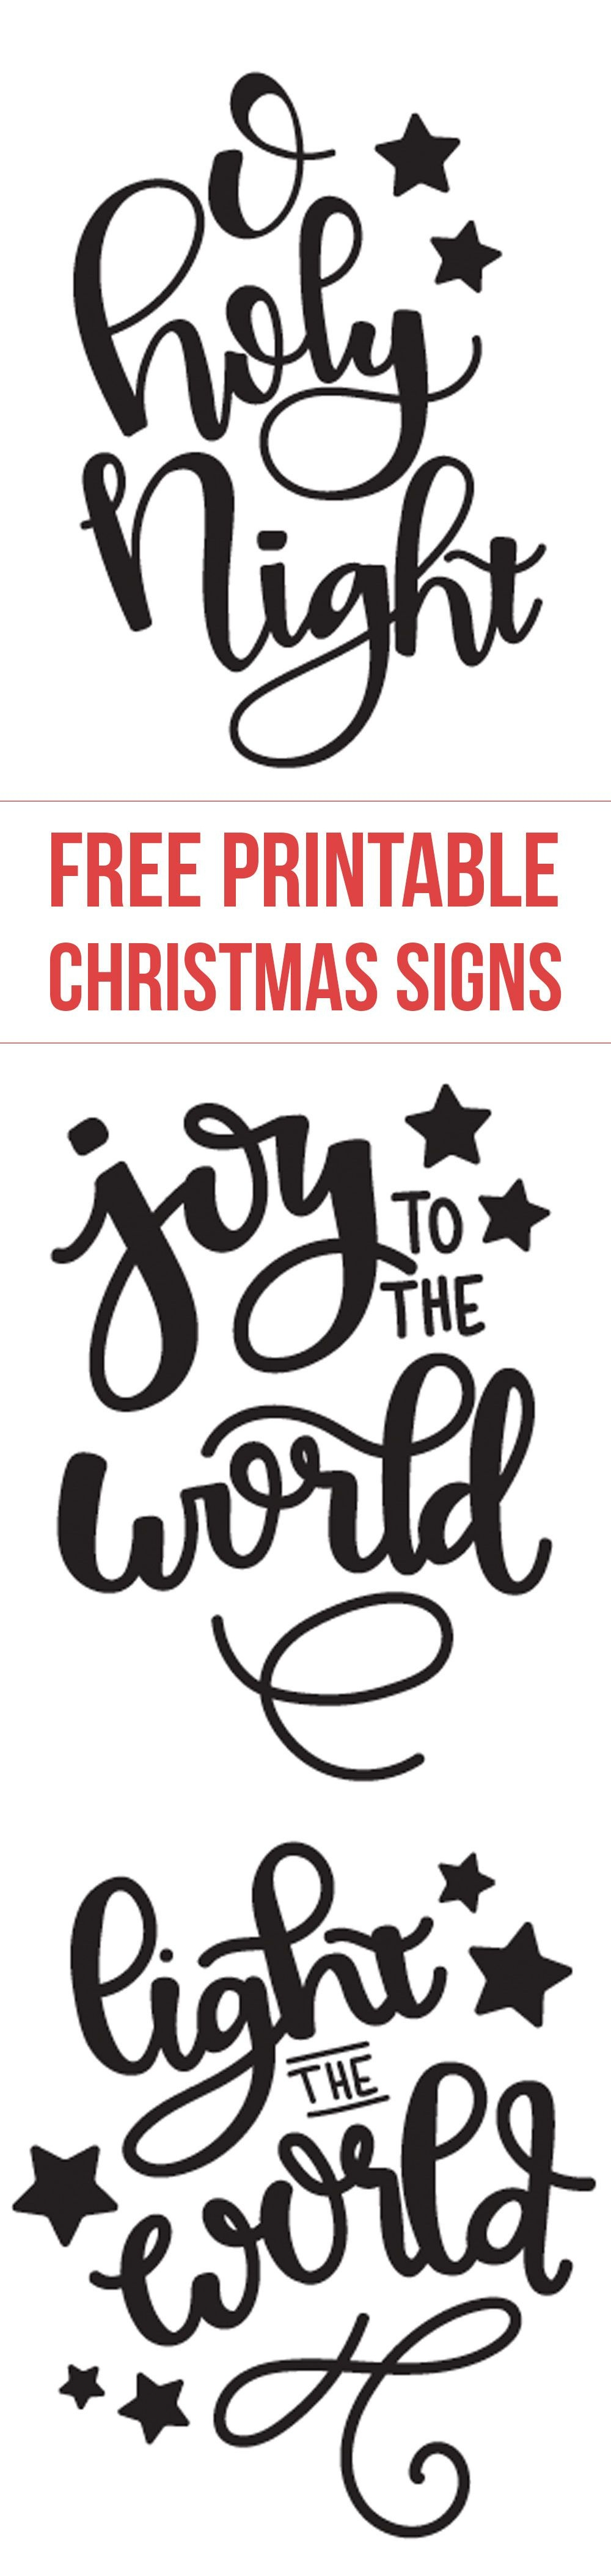 Light The World Designs | Live It. Love It. Lds. | Free Christmas - Free Printable Christmas Designs